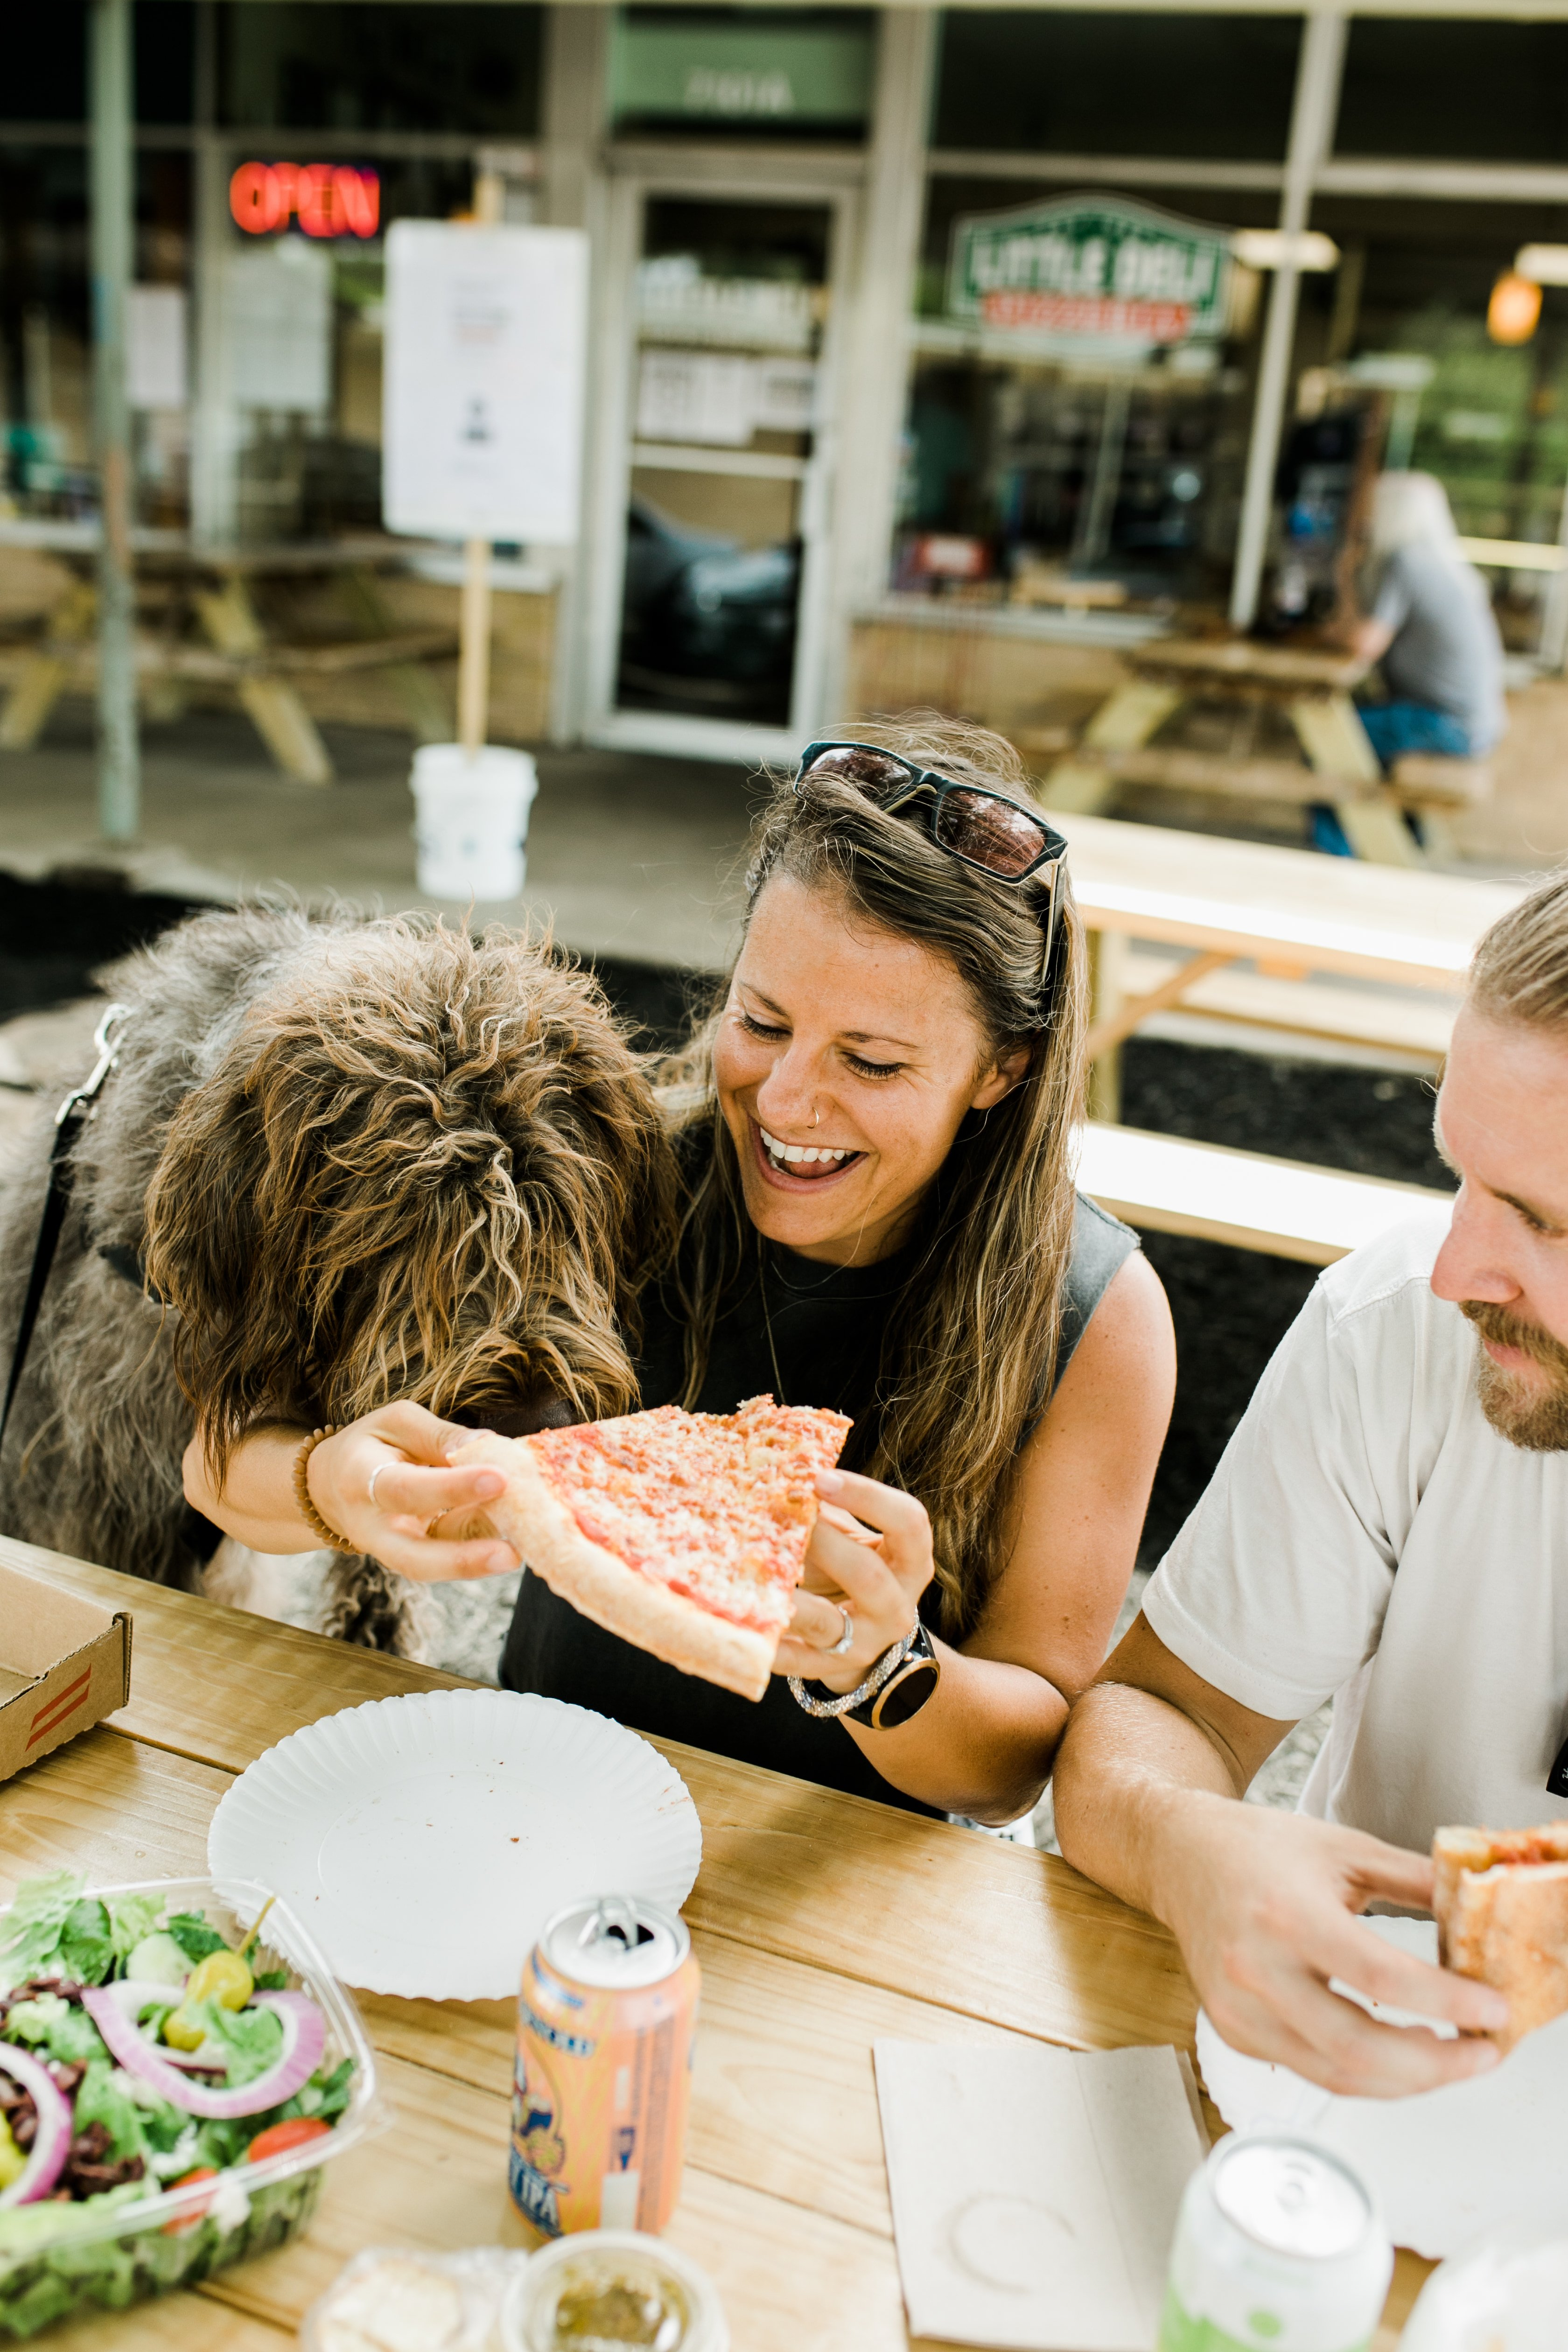 Female nutrition coach eating pizza with her dog and husband outside at a picnic table. She has a huge smile on her face.